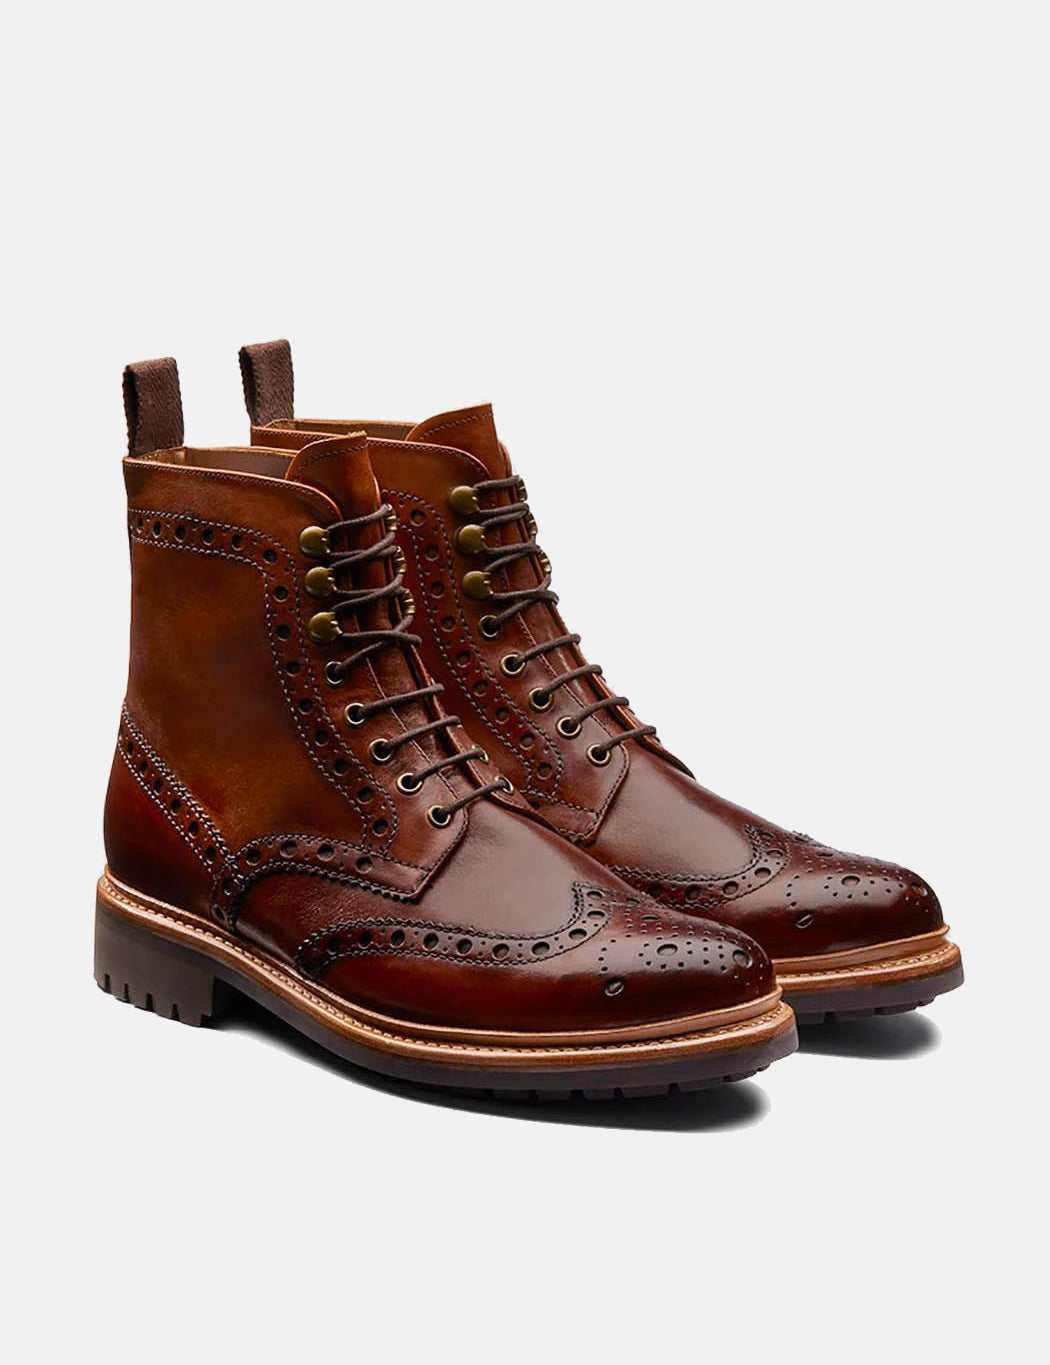 Grenson Fred Brogue Boot (Hand Painted) - Tan | URBAN EXCESS.